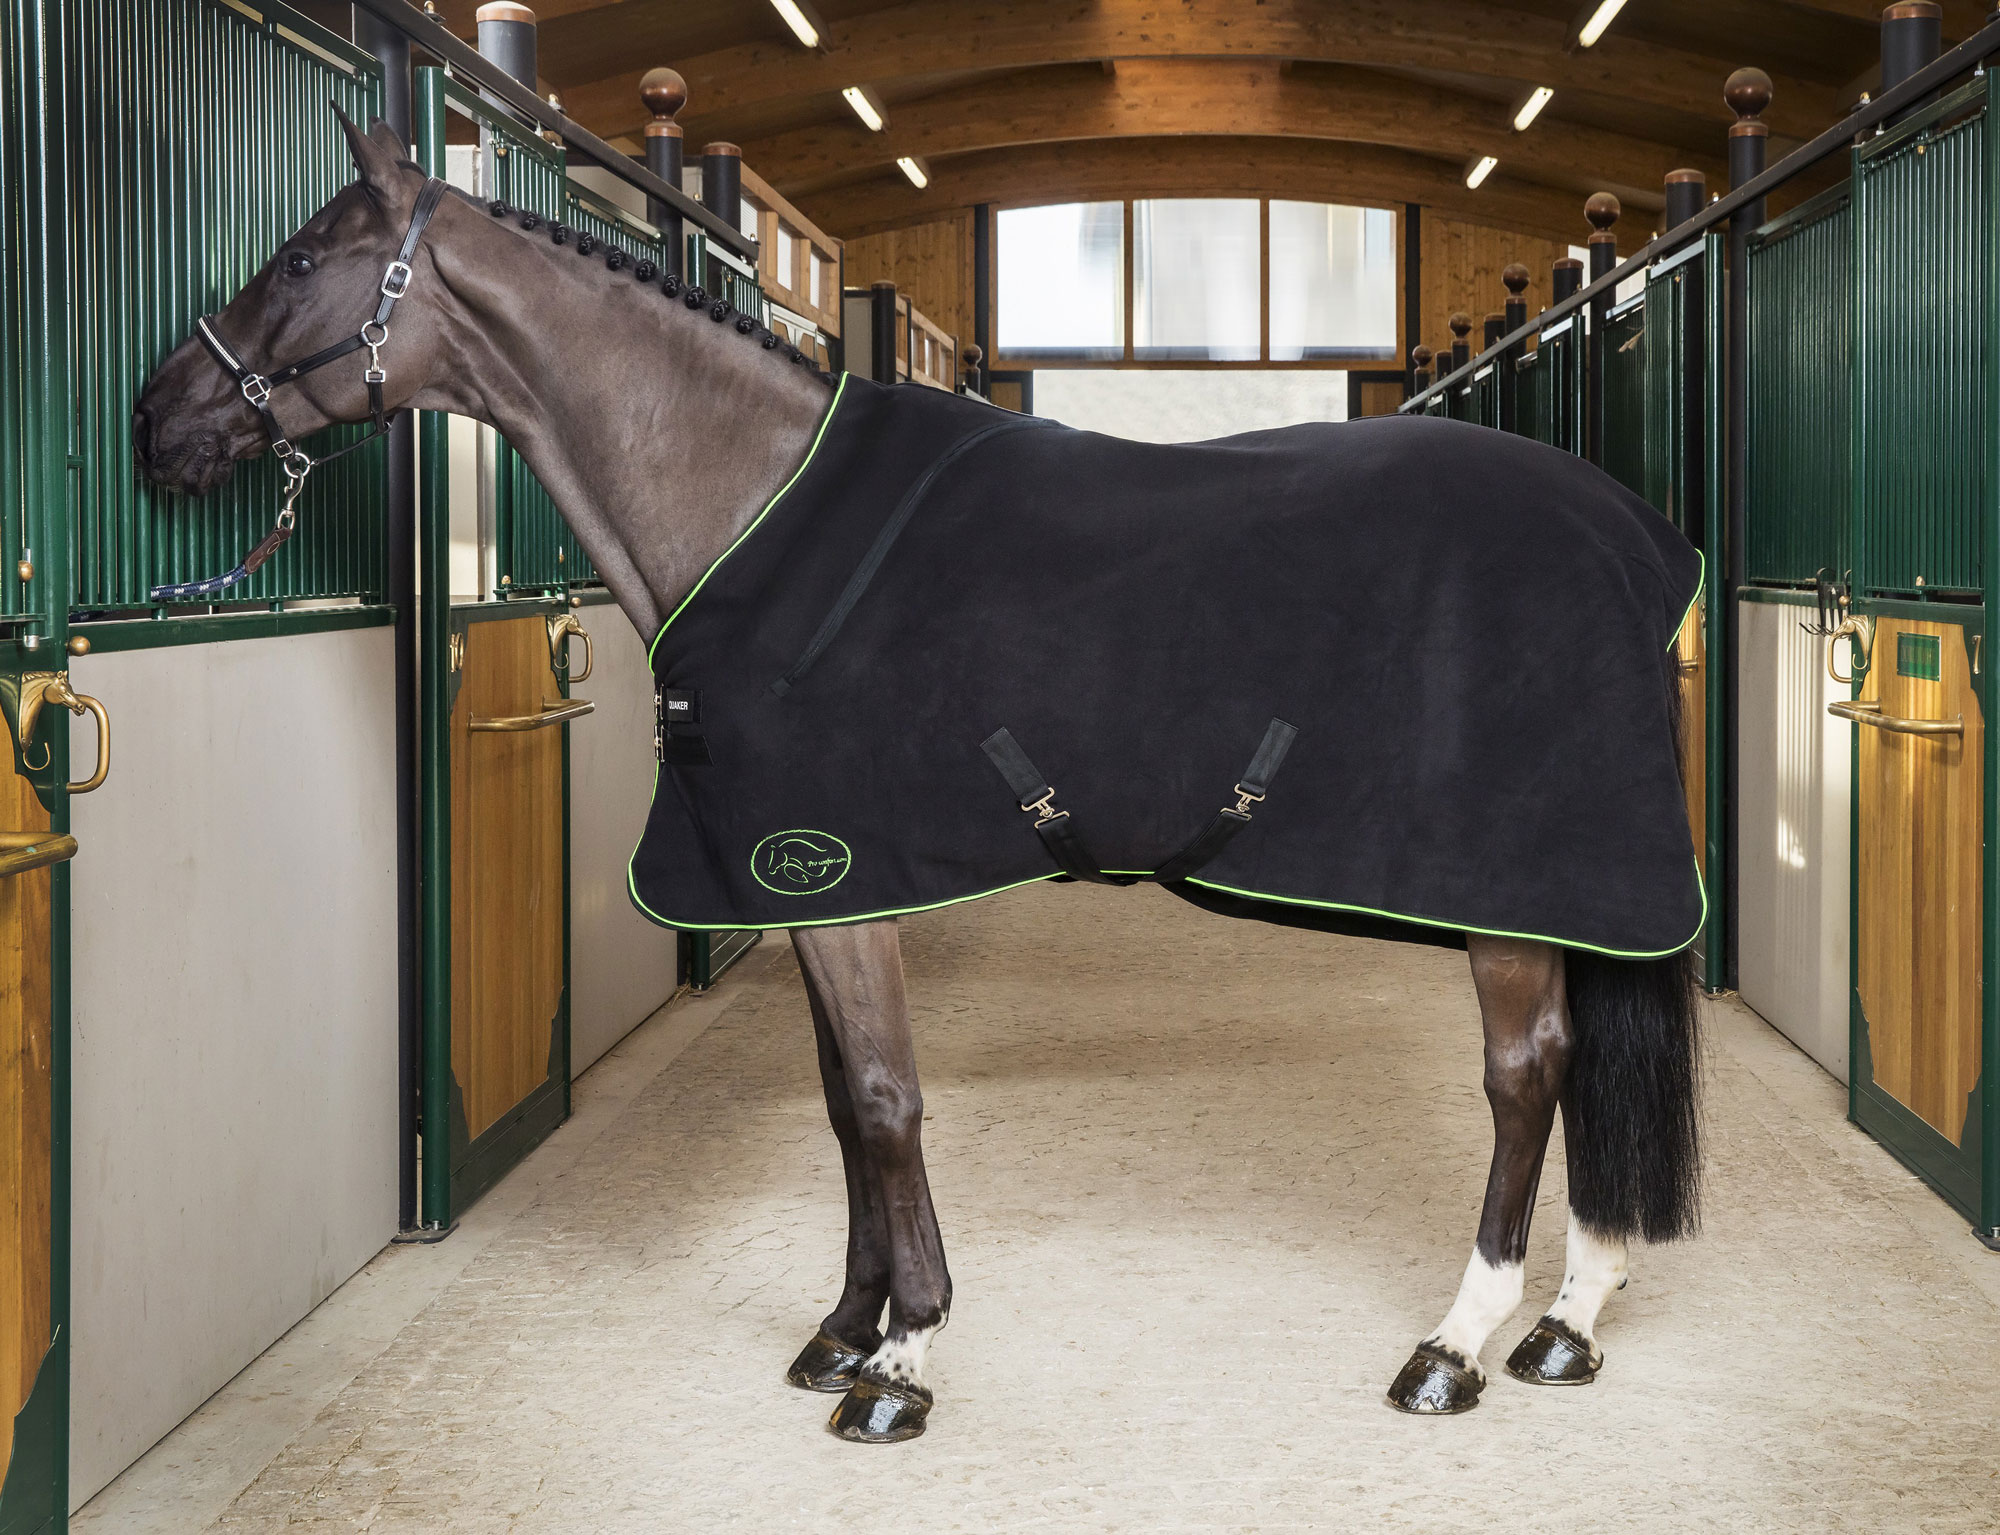 Couverture Double Polaire Thérapeutique Pro-Confort Horsewear Therapeutic double fleece blanket